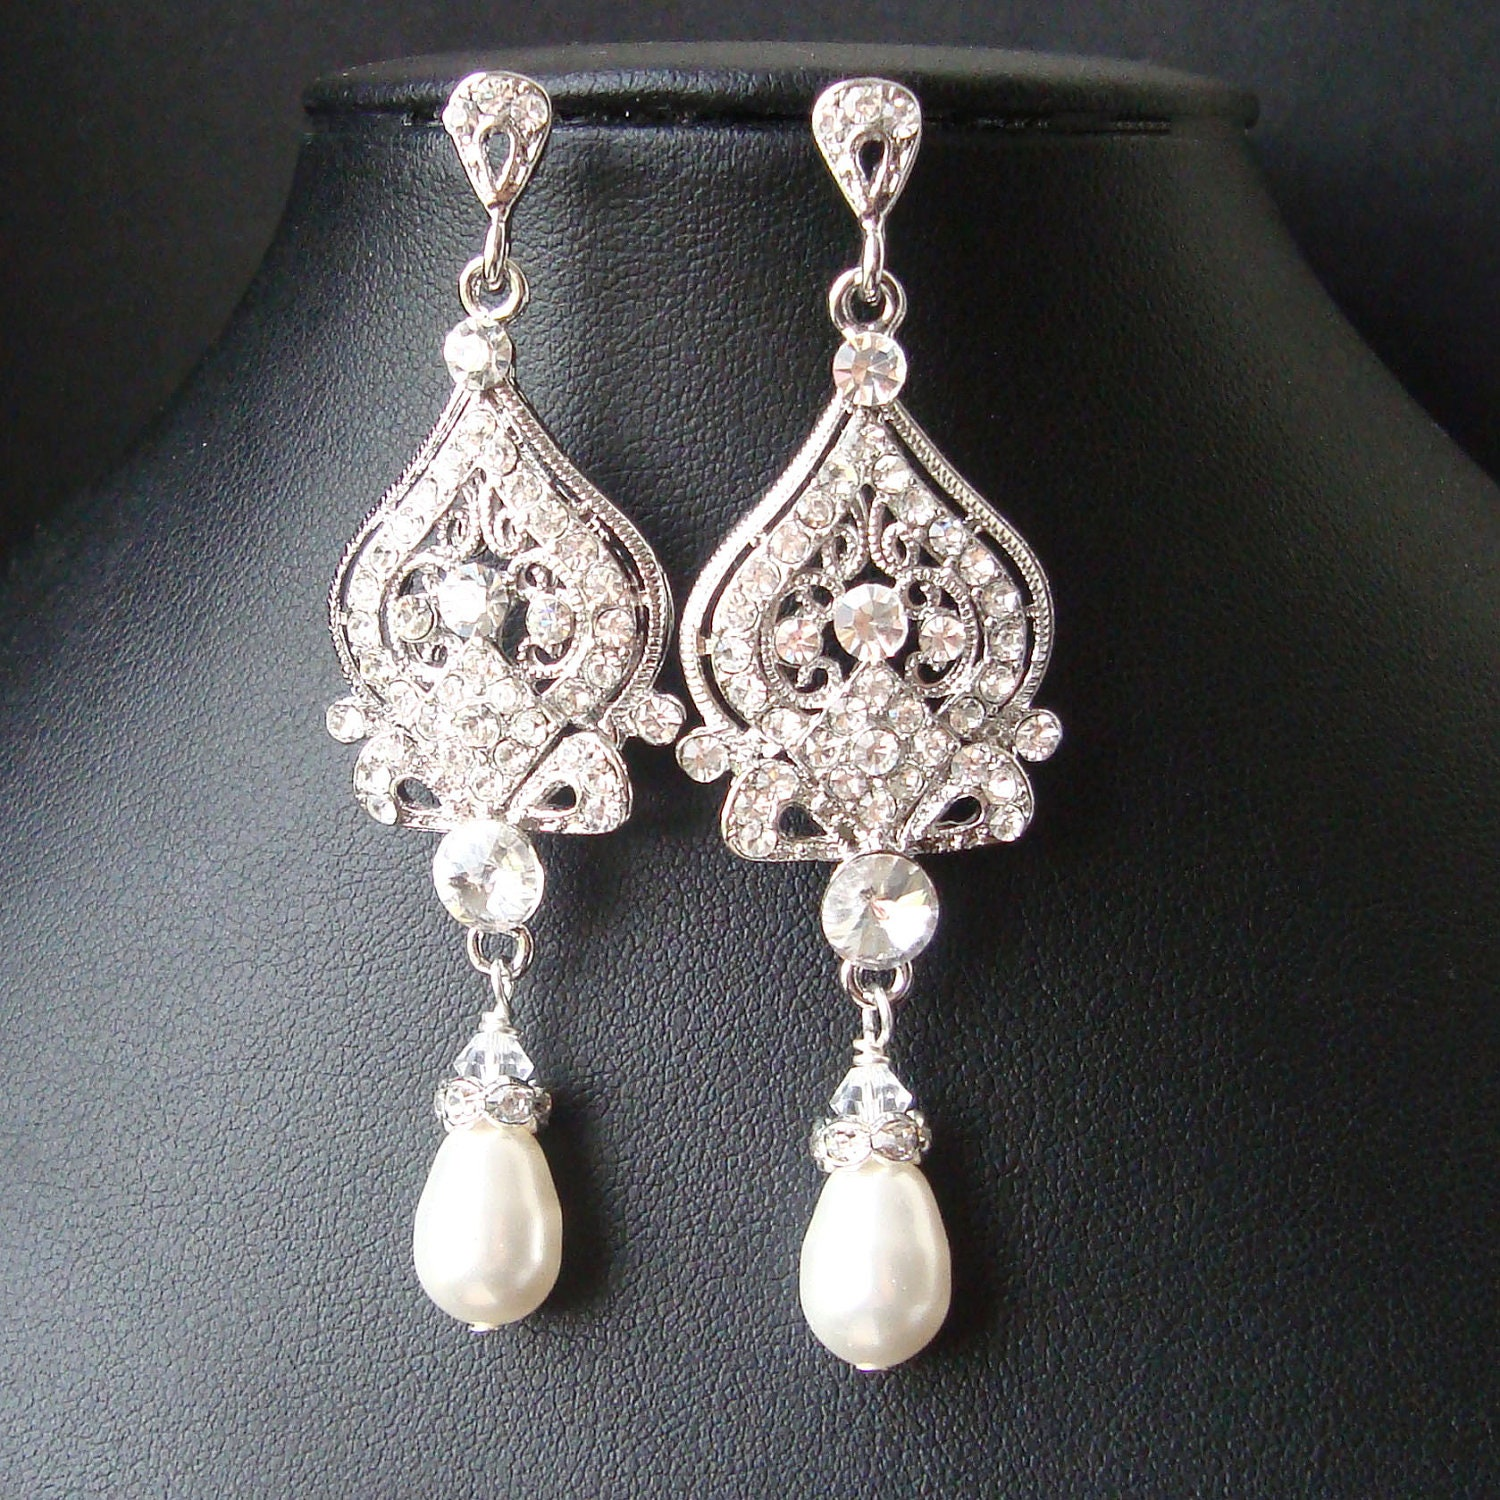 Vintage Inspired Wedding Bridal Earrings Pearl and by luxedeluxe